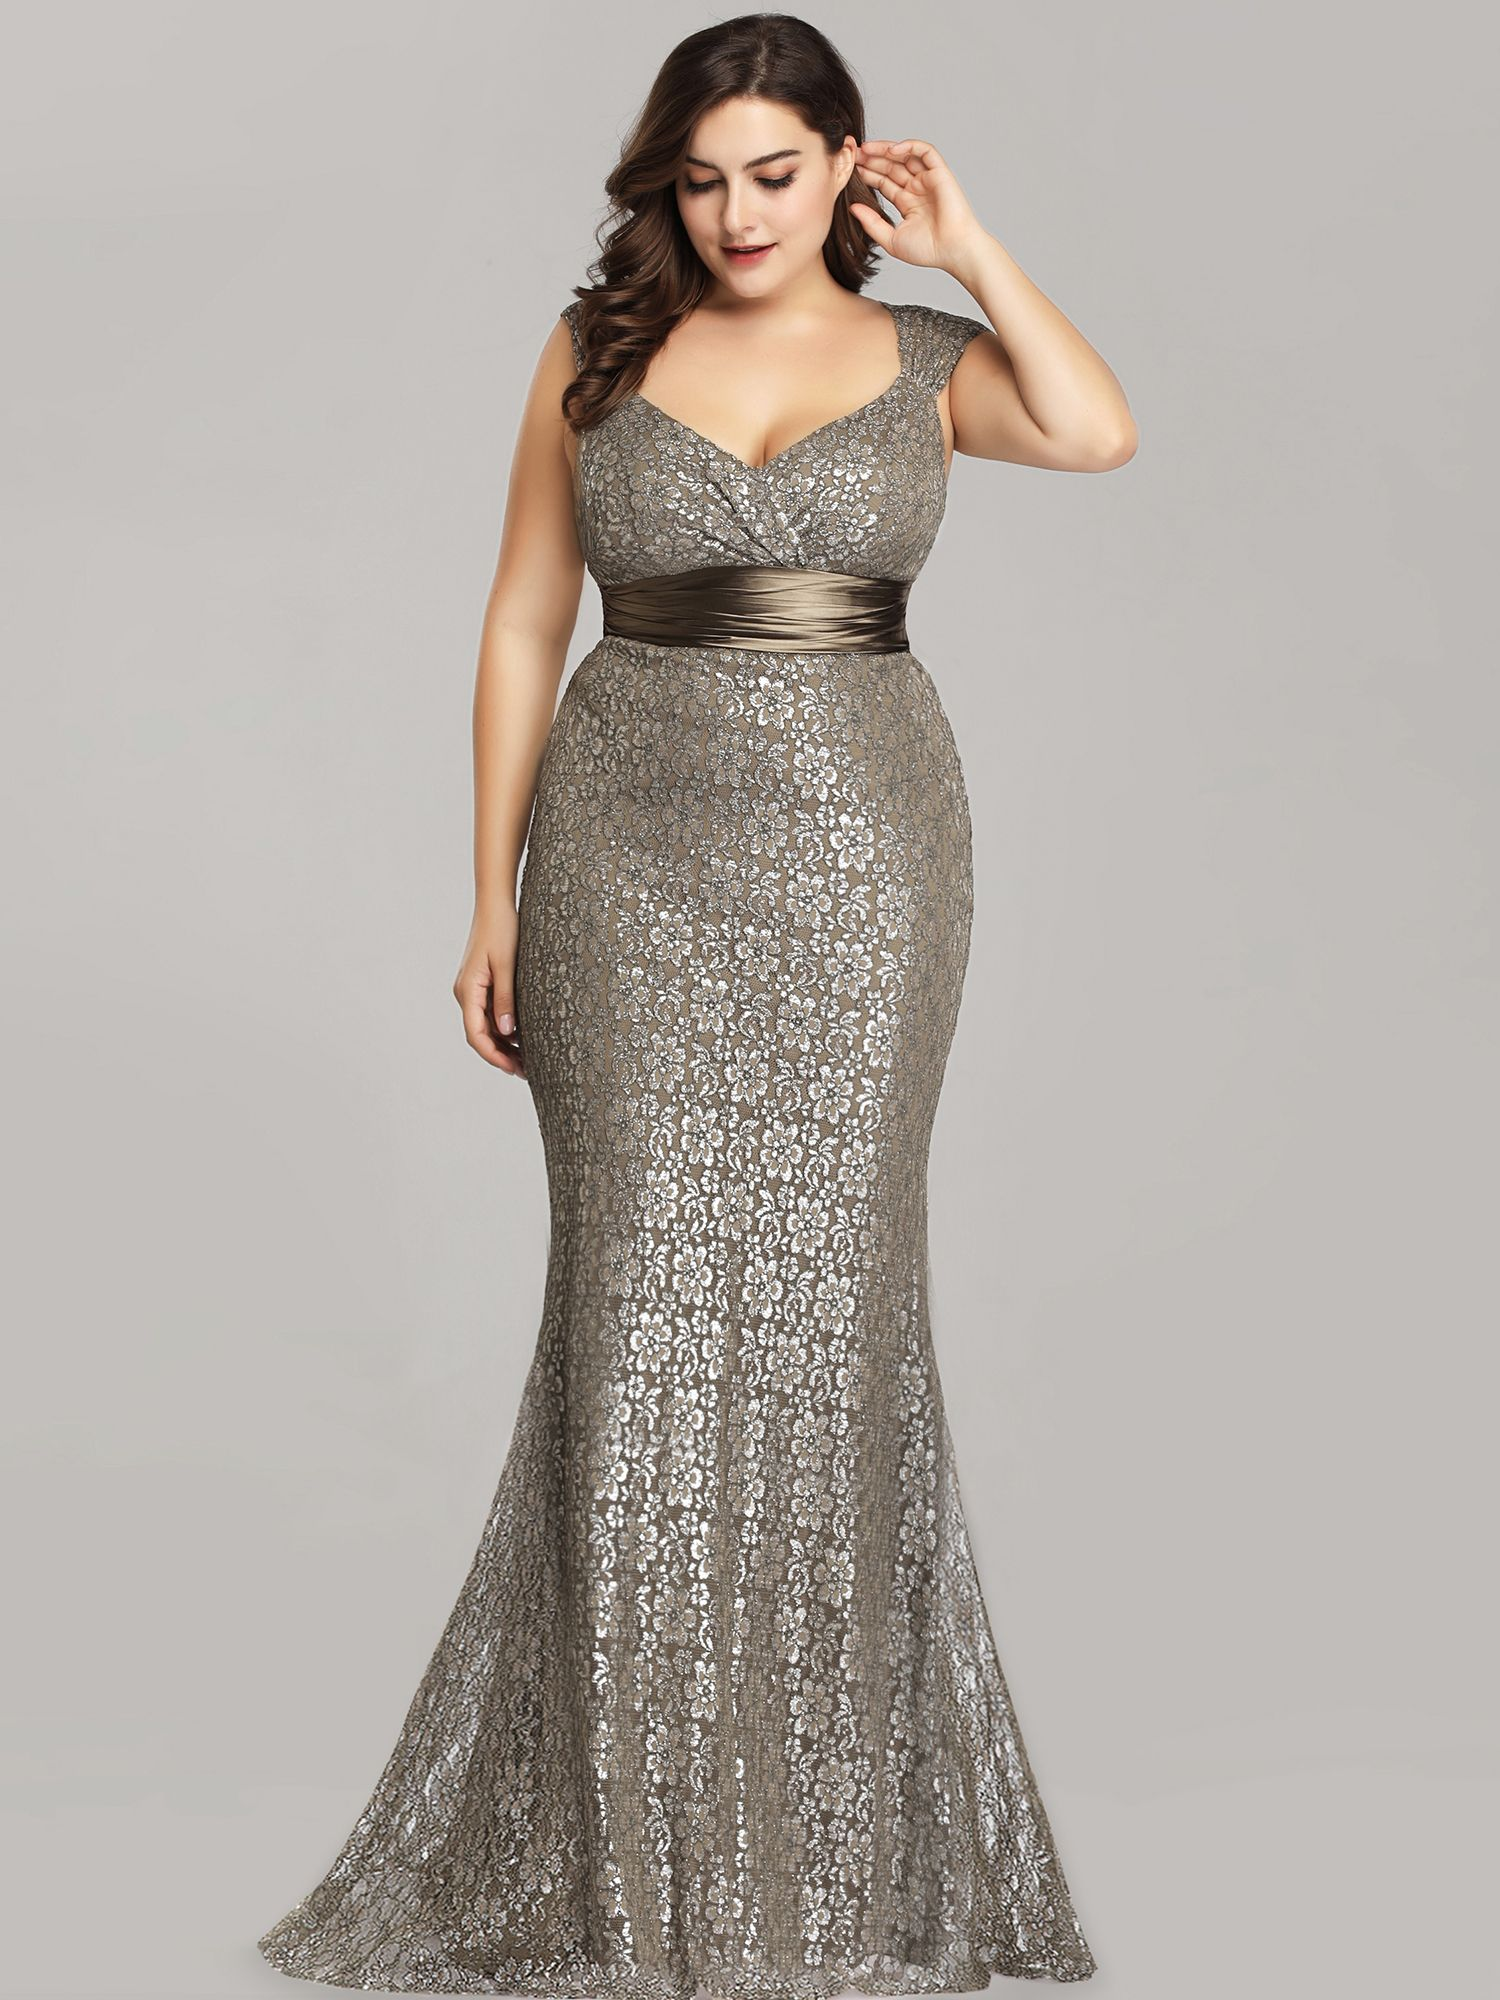 Ever Pretty Ever Pretty Womens Plus Size Lace Long Formal Evening Party Dresses For Women 87982 Coffee Us4 Walmart Com Evening Dresses Plus Size Evening Dresses Elegant Plus Size Prom Dresses [ 2000 x 1500 Pixel ]